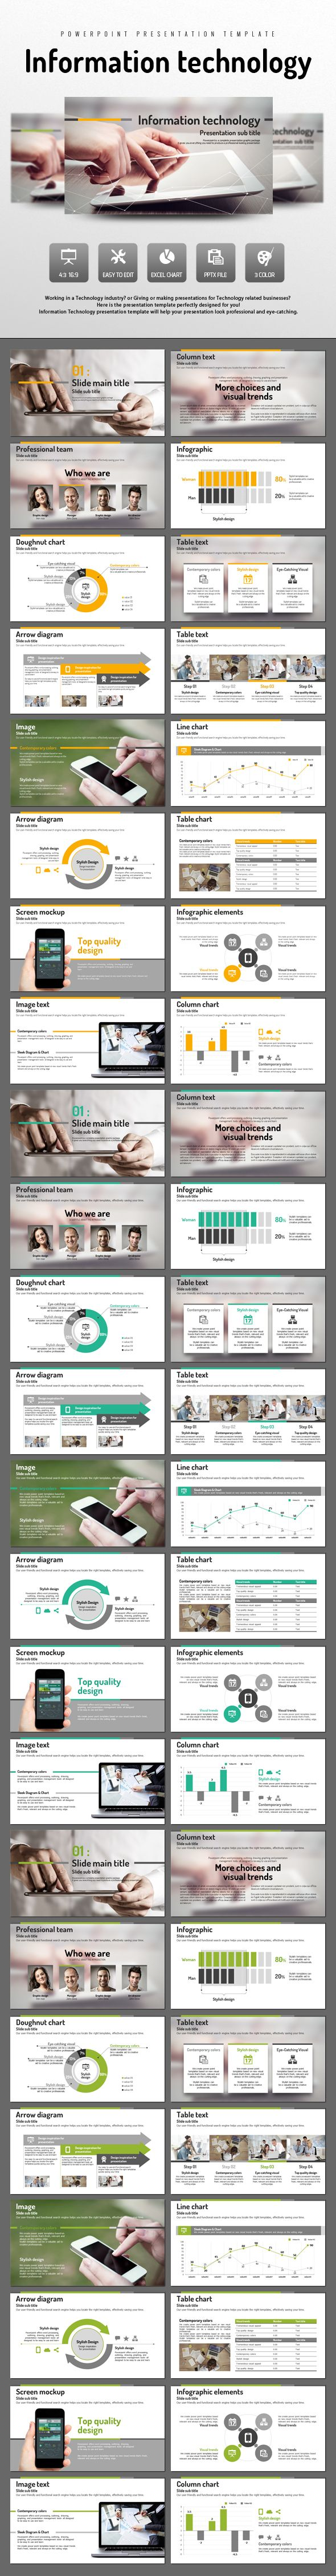 Information Technology (PowerPoint Templates) | Template, Ppt design ...